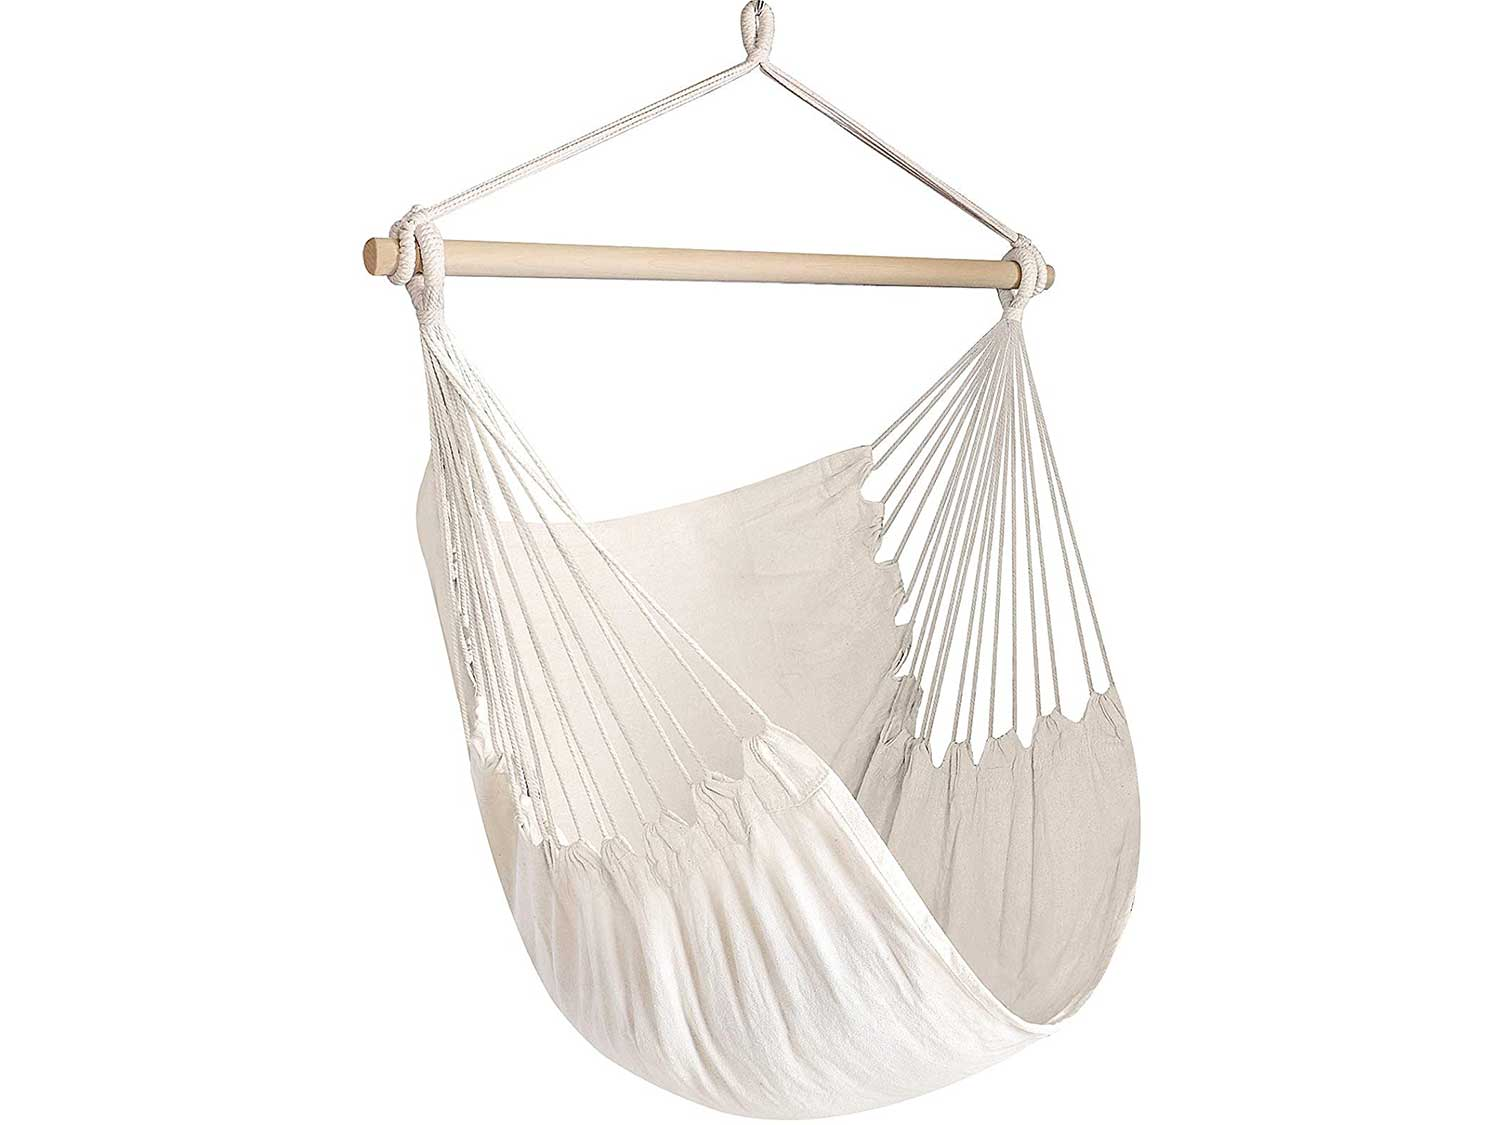 Chihee Hammock Chair Large Hammock Chair Relax Hanging Swing Chair Cotton Weave for Superior Comfort & Durability Perfect for Indoor/Outdoor Home Bedroom Patio Deck Yard Garden